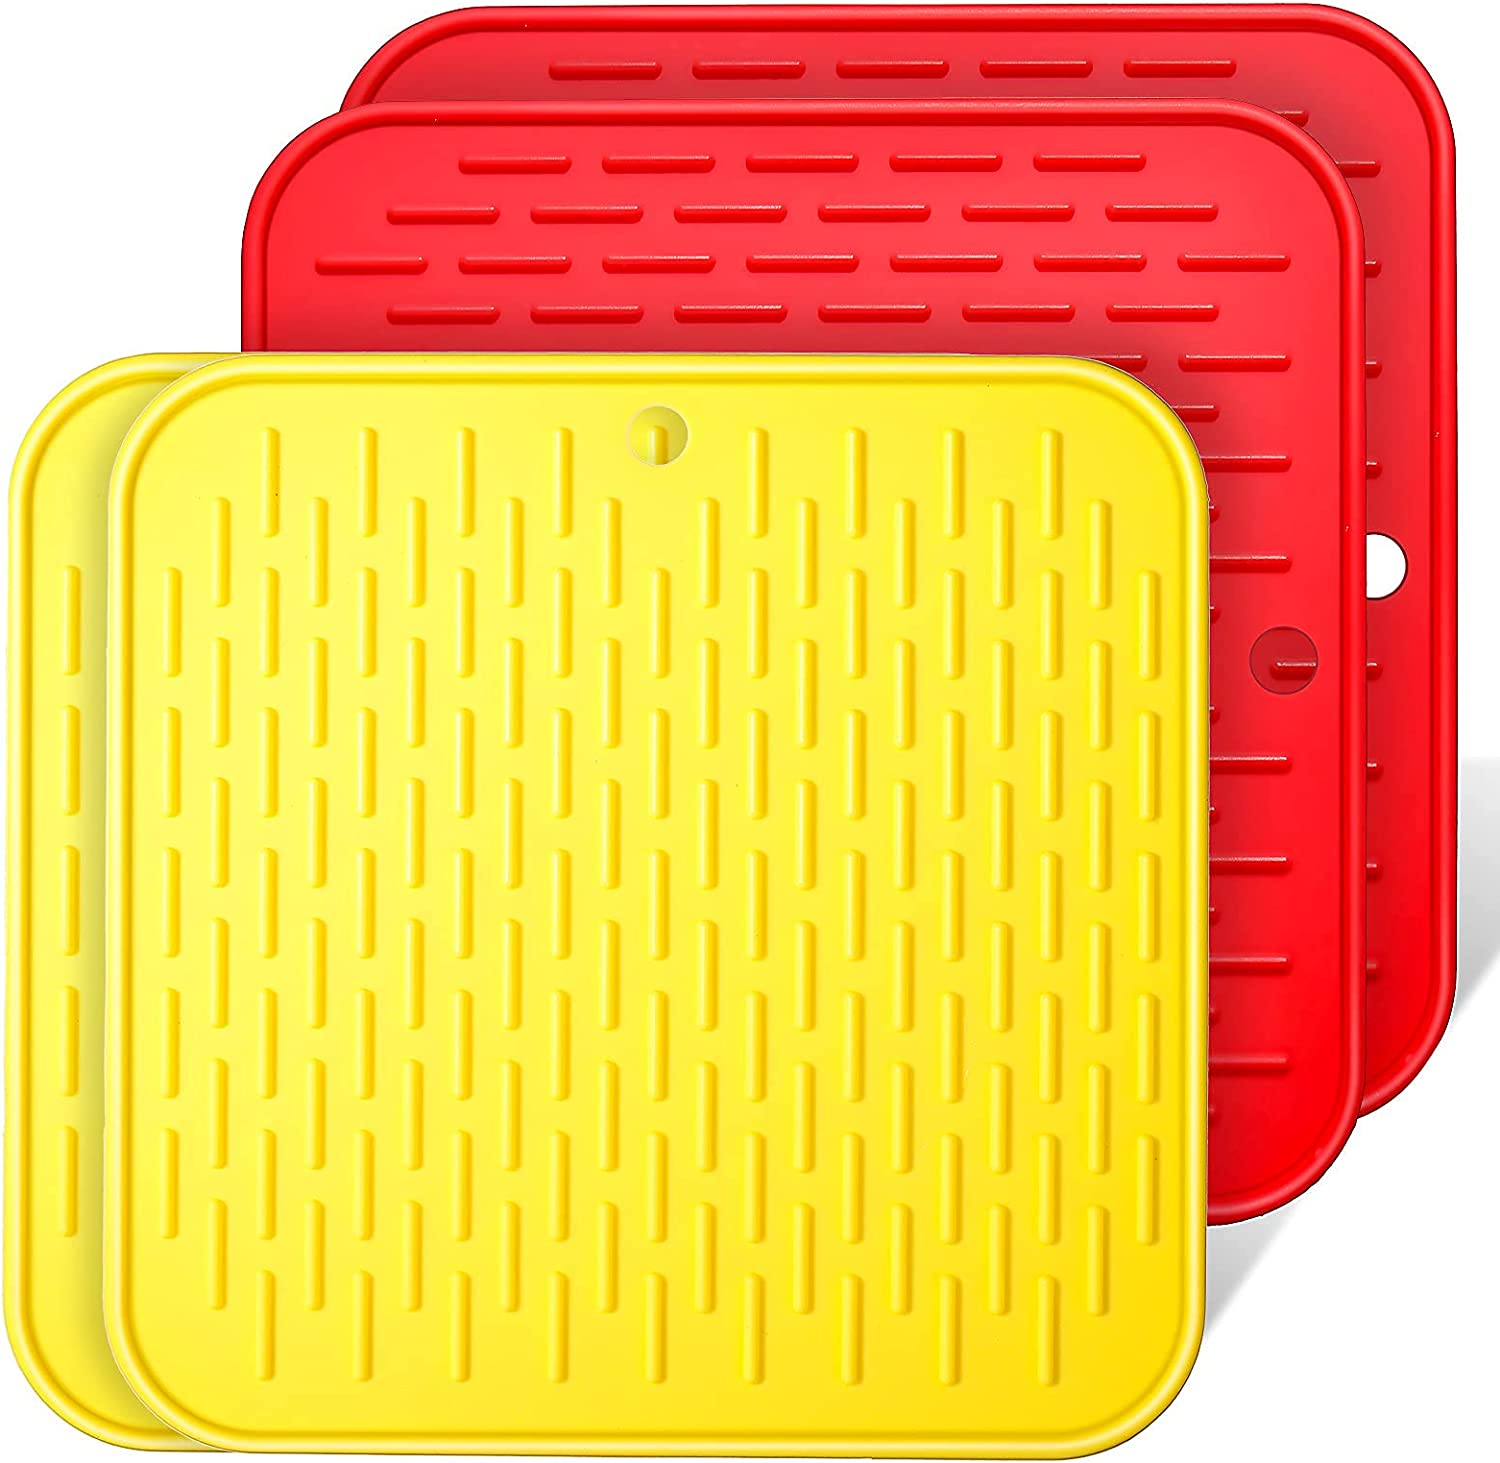 4 Pieces Reusable Air Fryer Liners, Non-Stick Silicone Air Fryer Basket Mats Deep Fryer Accessories, Red and Yellow